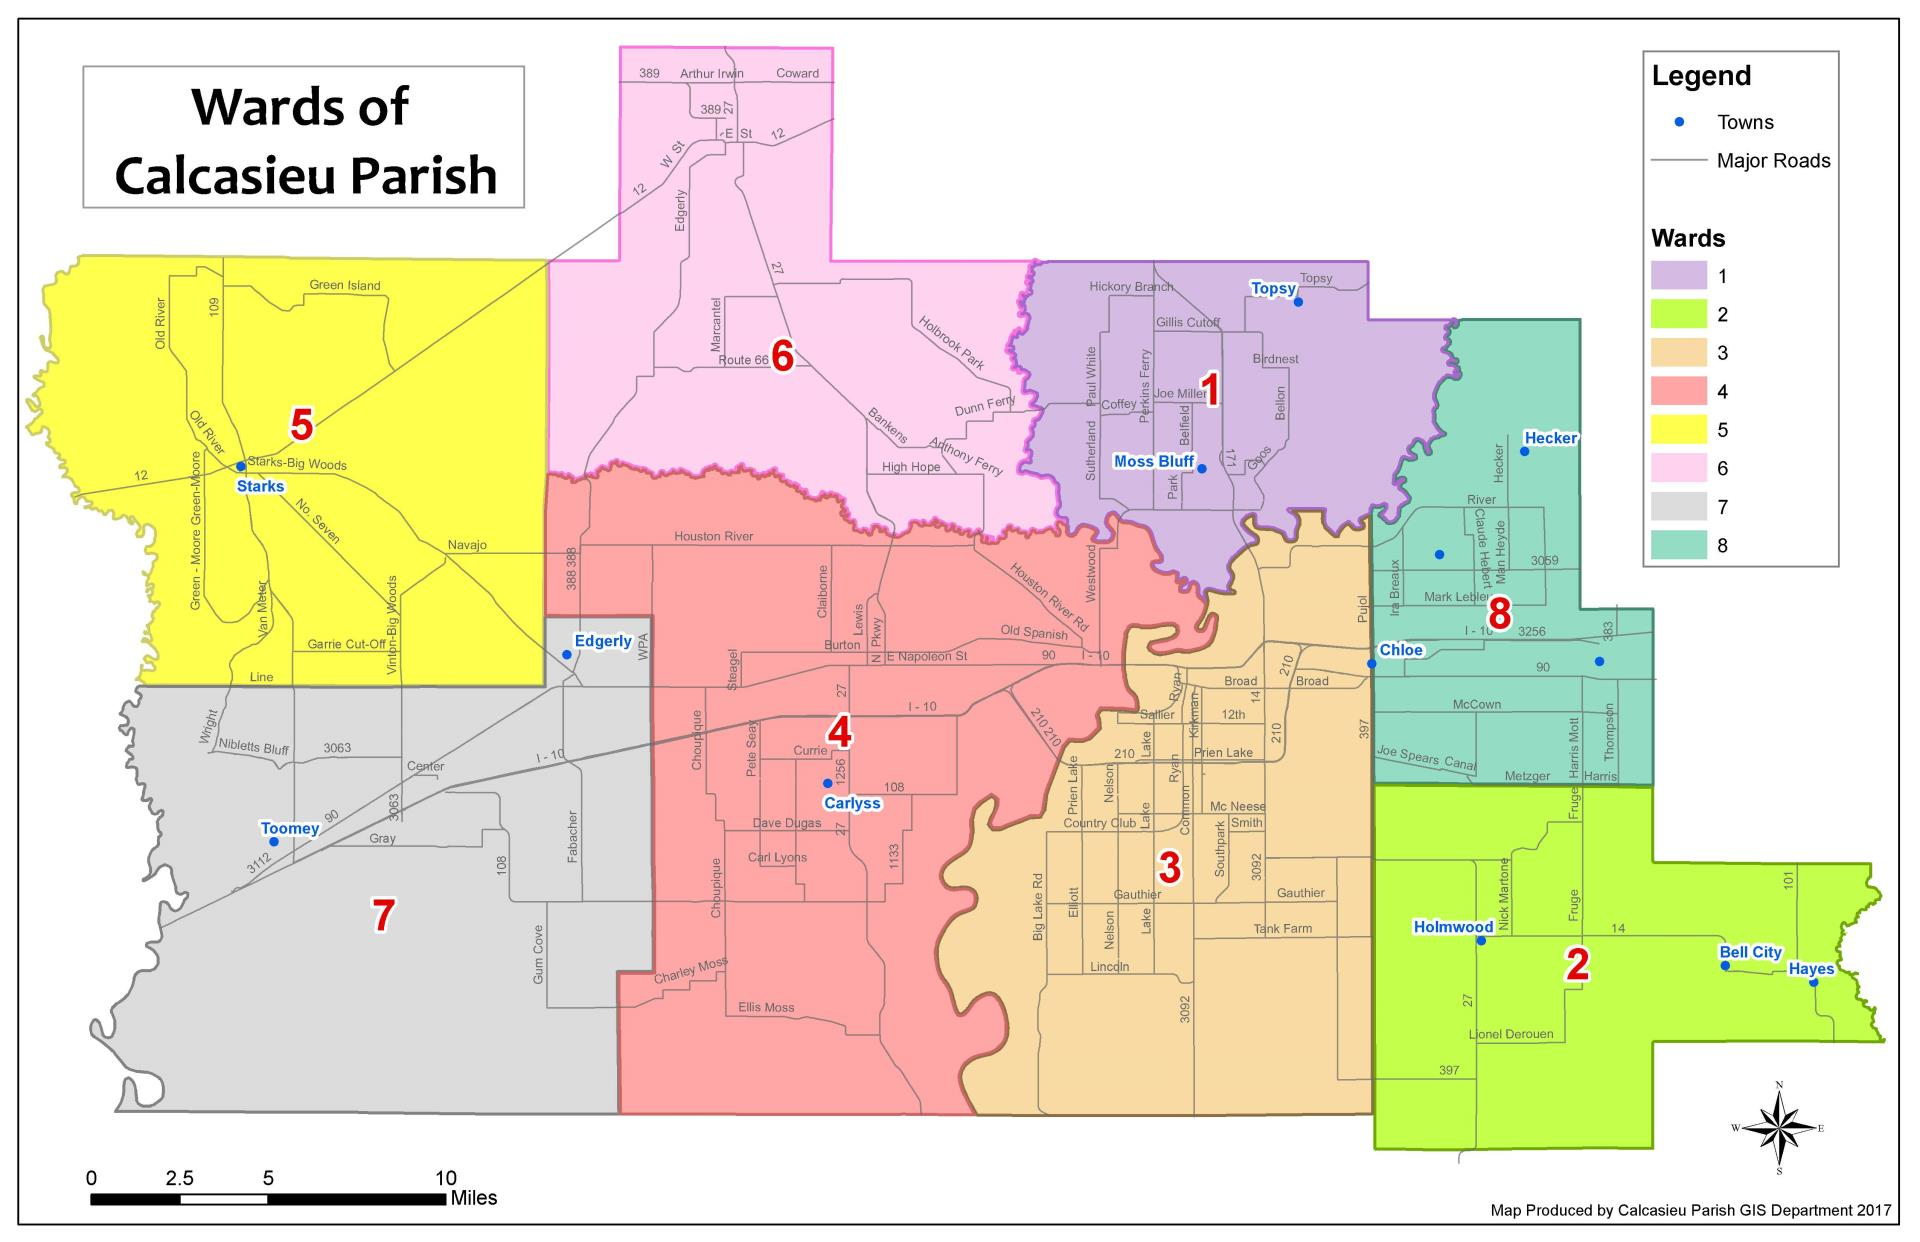 Calcasieu Parish Ward Map